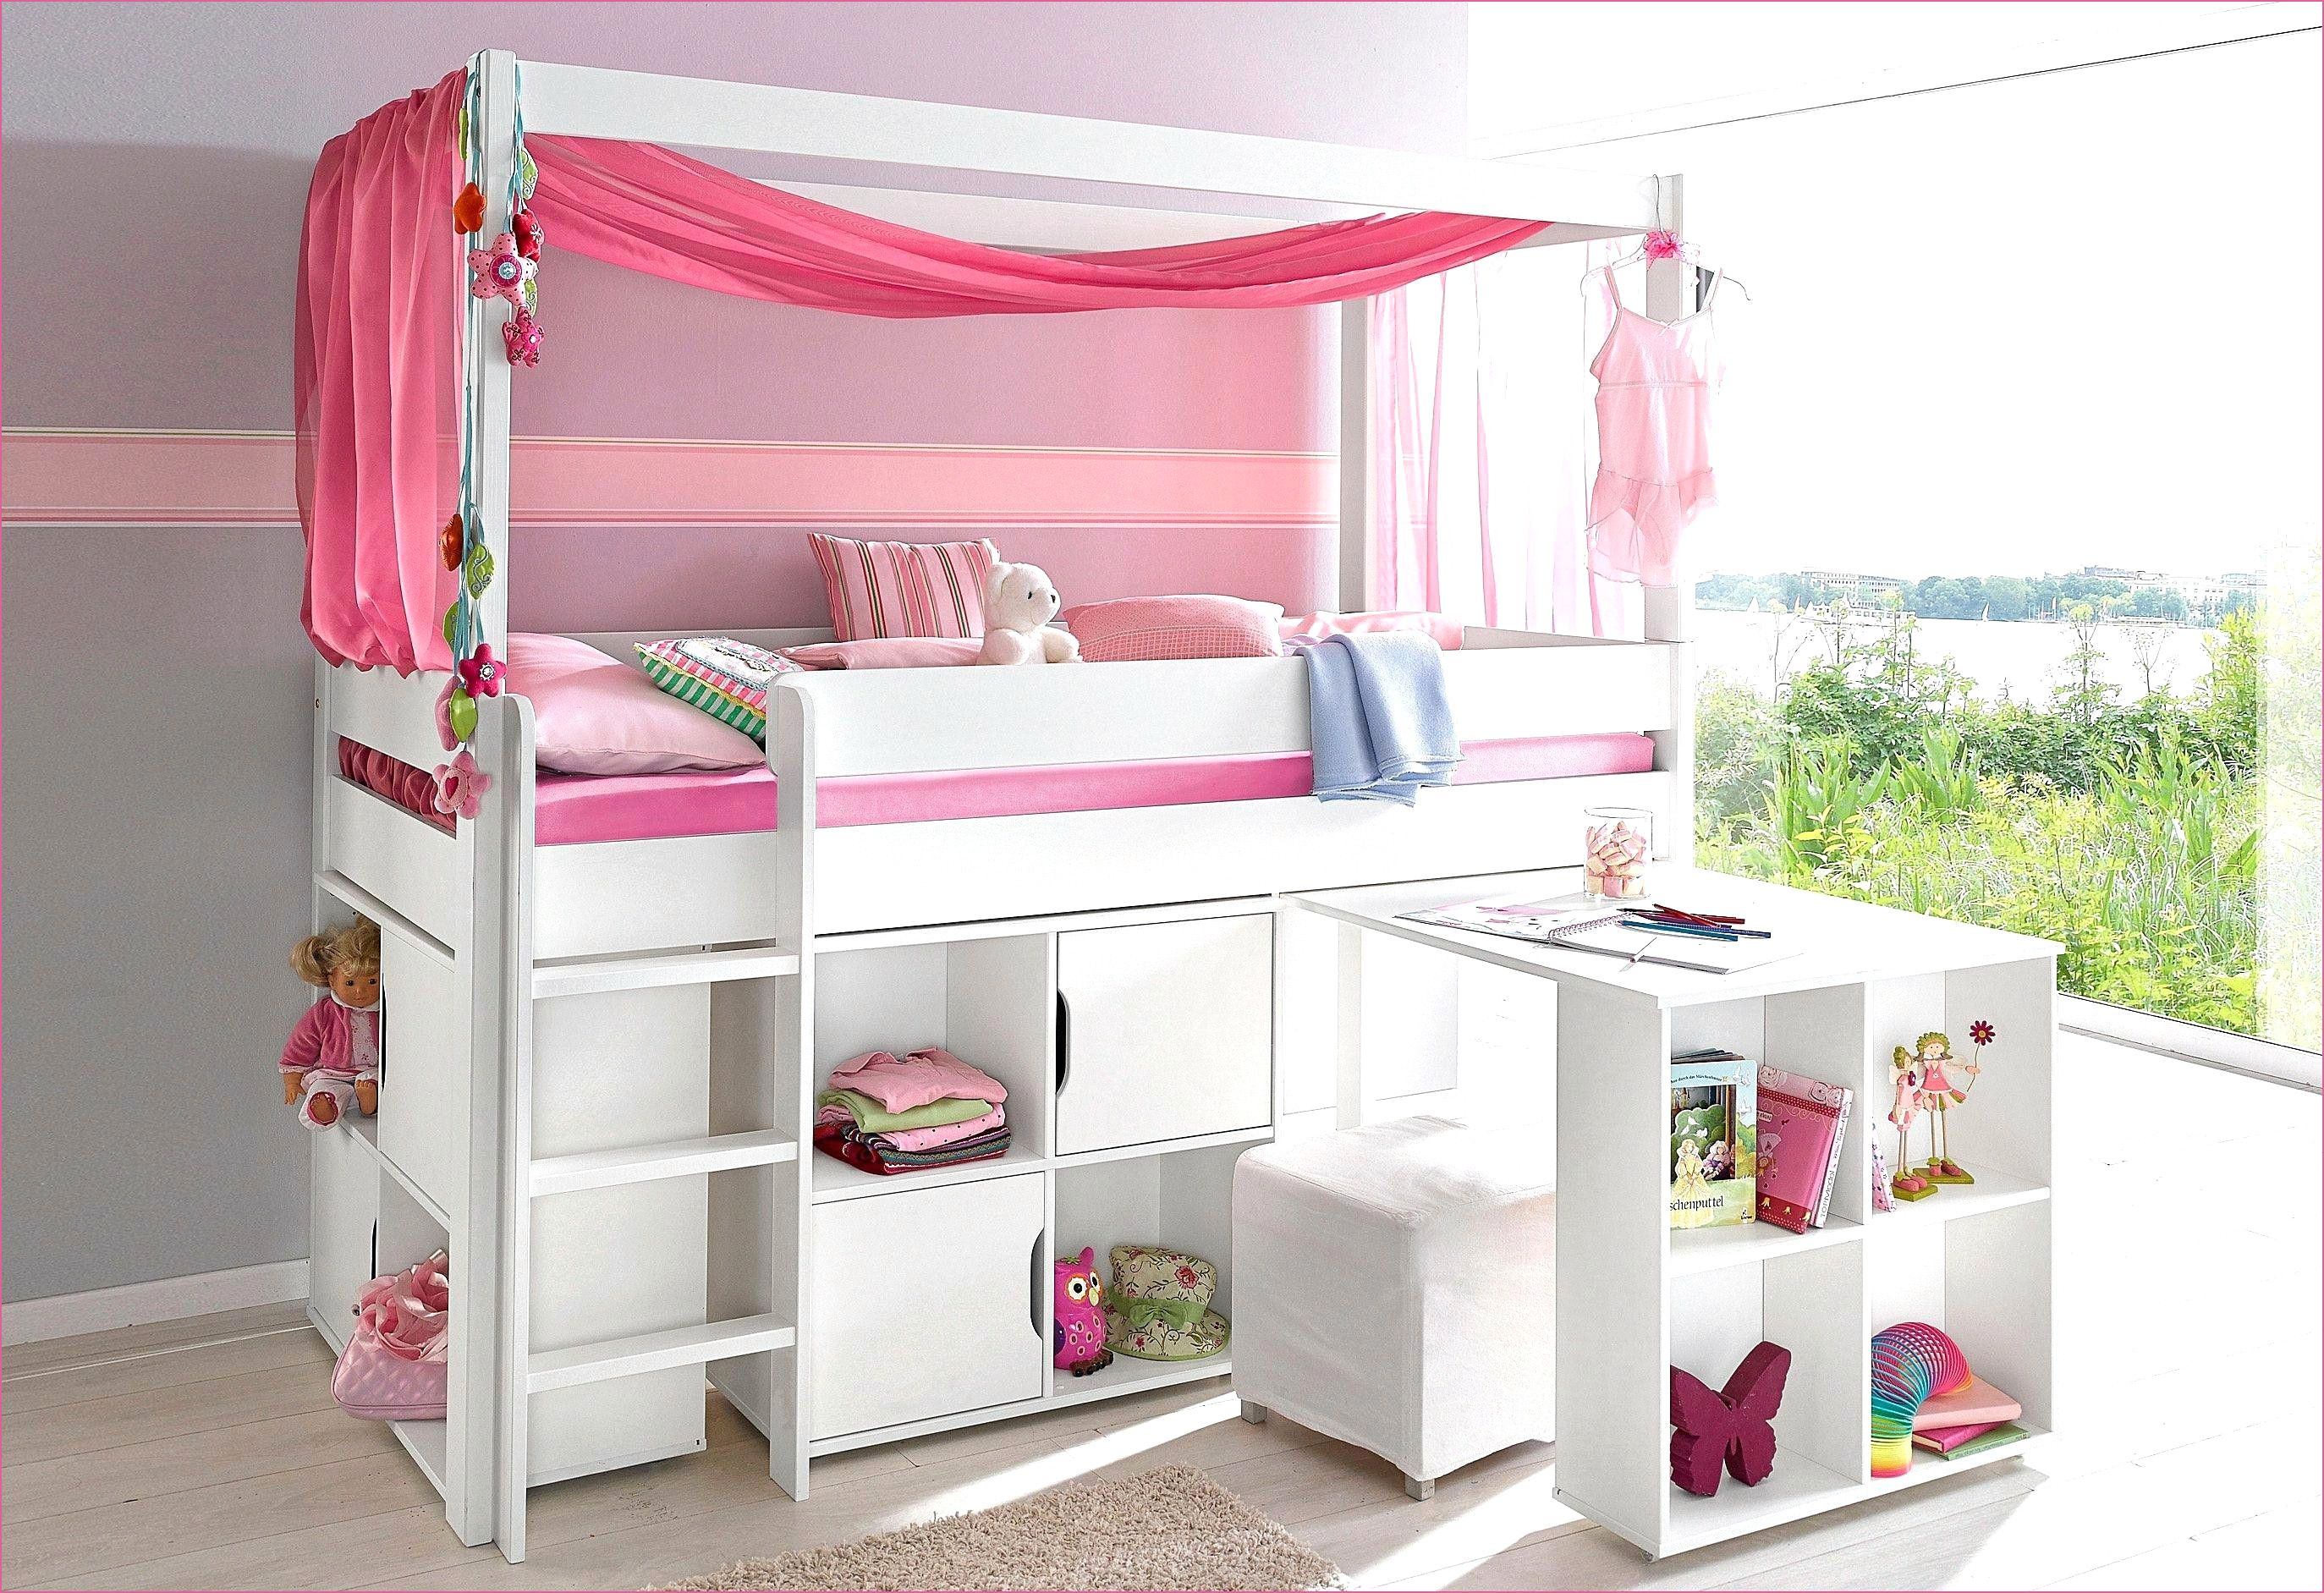 Cassia Collection Twin/Twin Bunk Bed CMBK925 for 565